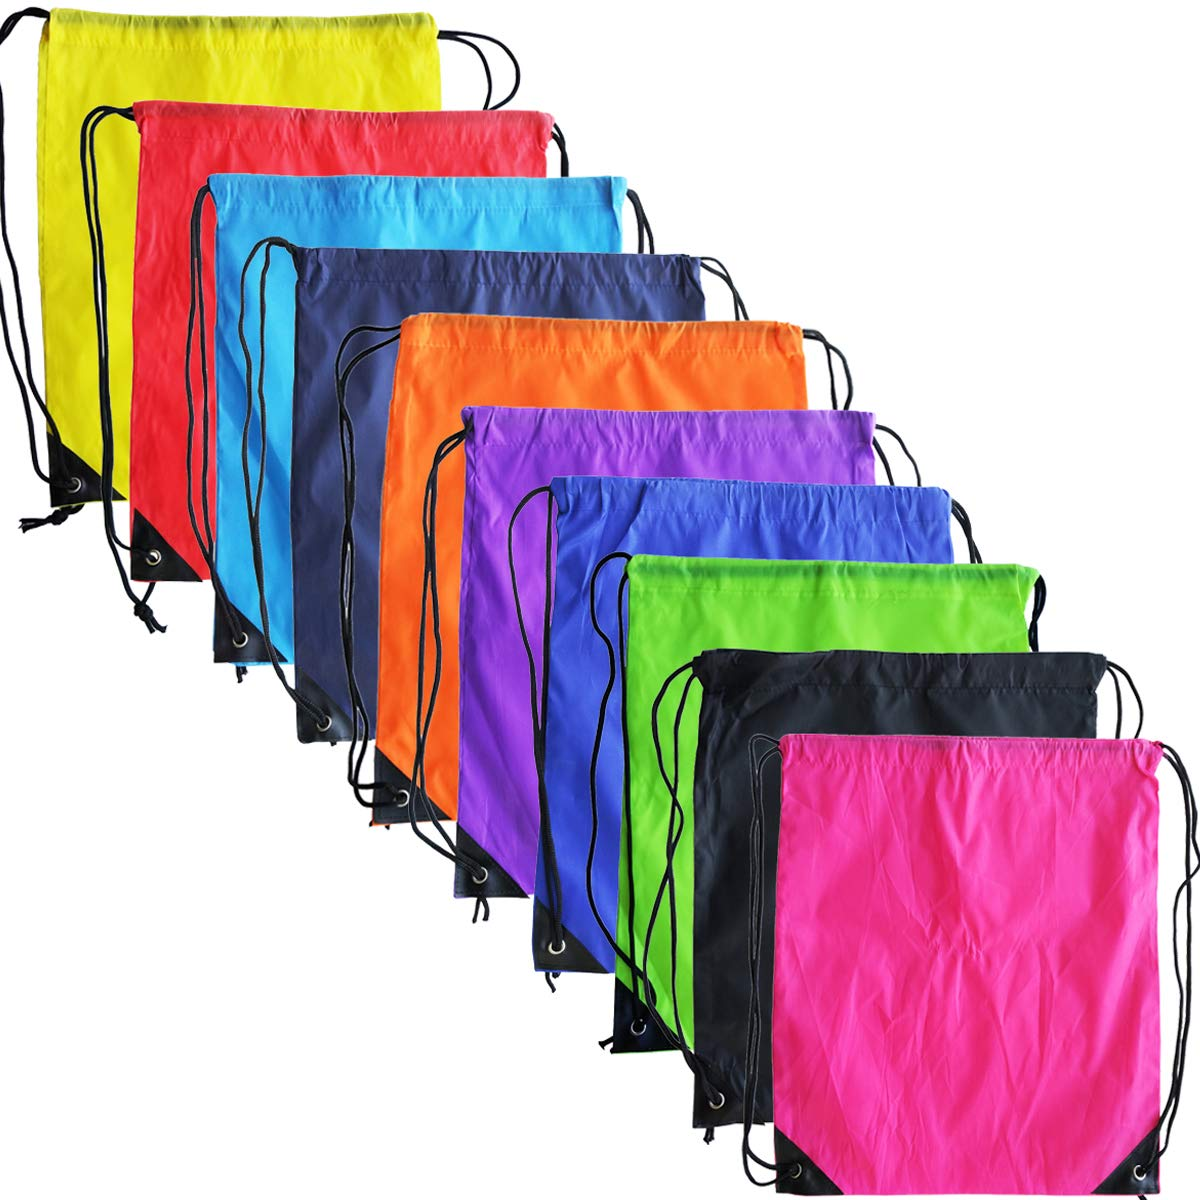 10 Colors Drawstring Backpack Bags Sack Pack Cinch Tote Sport Storage Polyester Bag for Gym Traveling (10 Colors) by Topspeeder